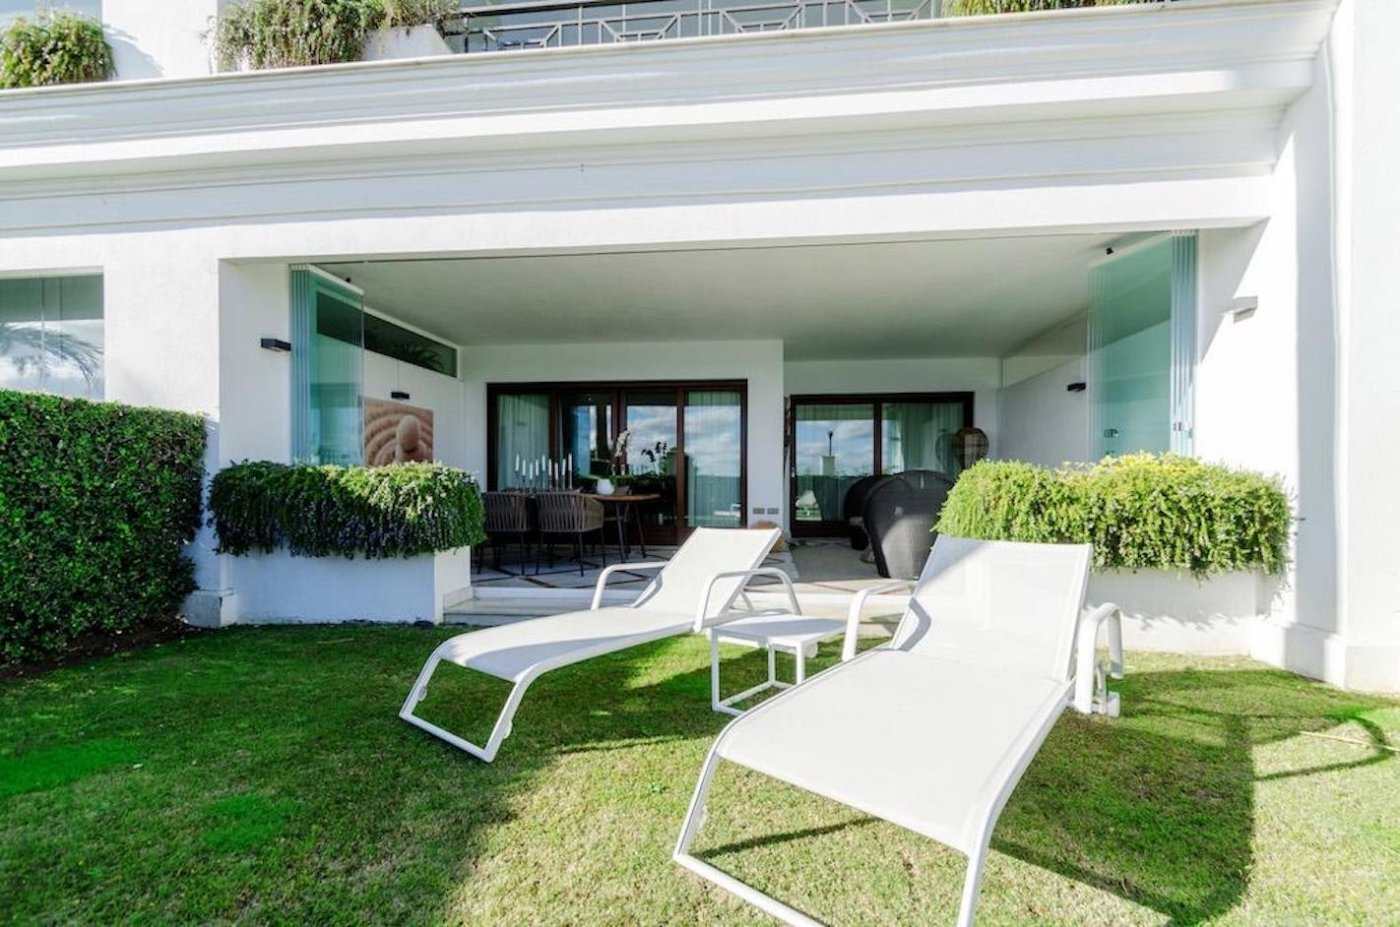 FIRST LINE OF THE SEE APARTMENT WITH PRIVATE GARDEN, 2 BEDROOMS IN DONCELLA BEACH, ESTEPONA